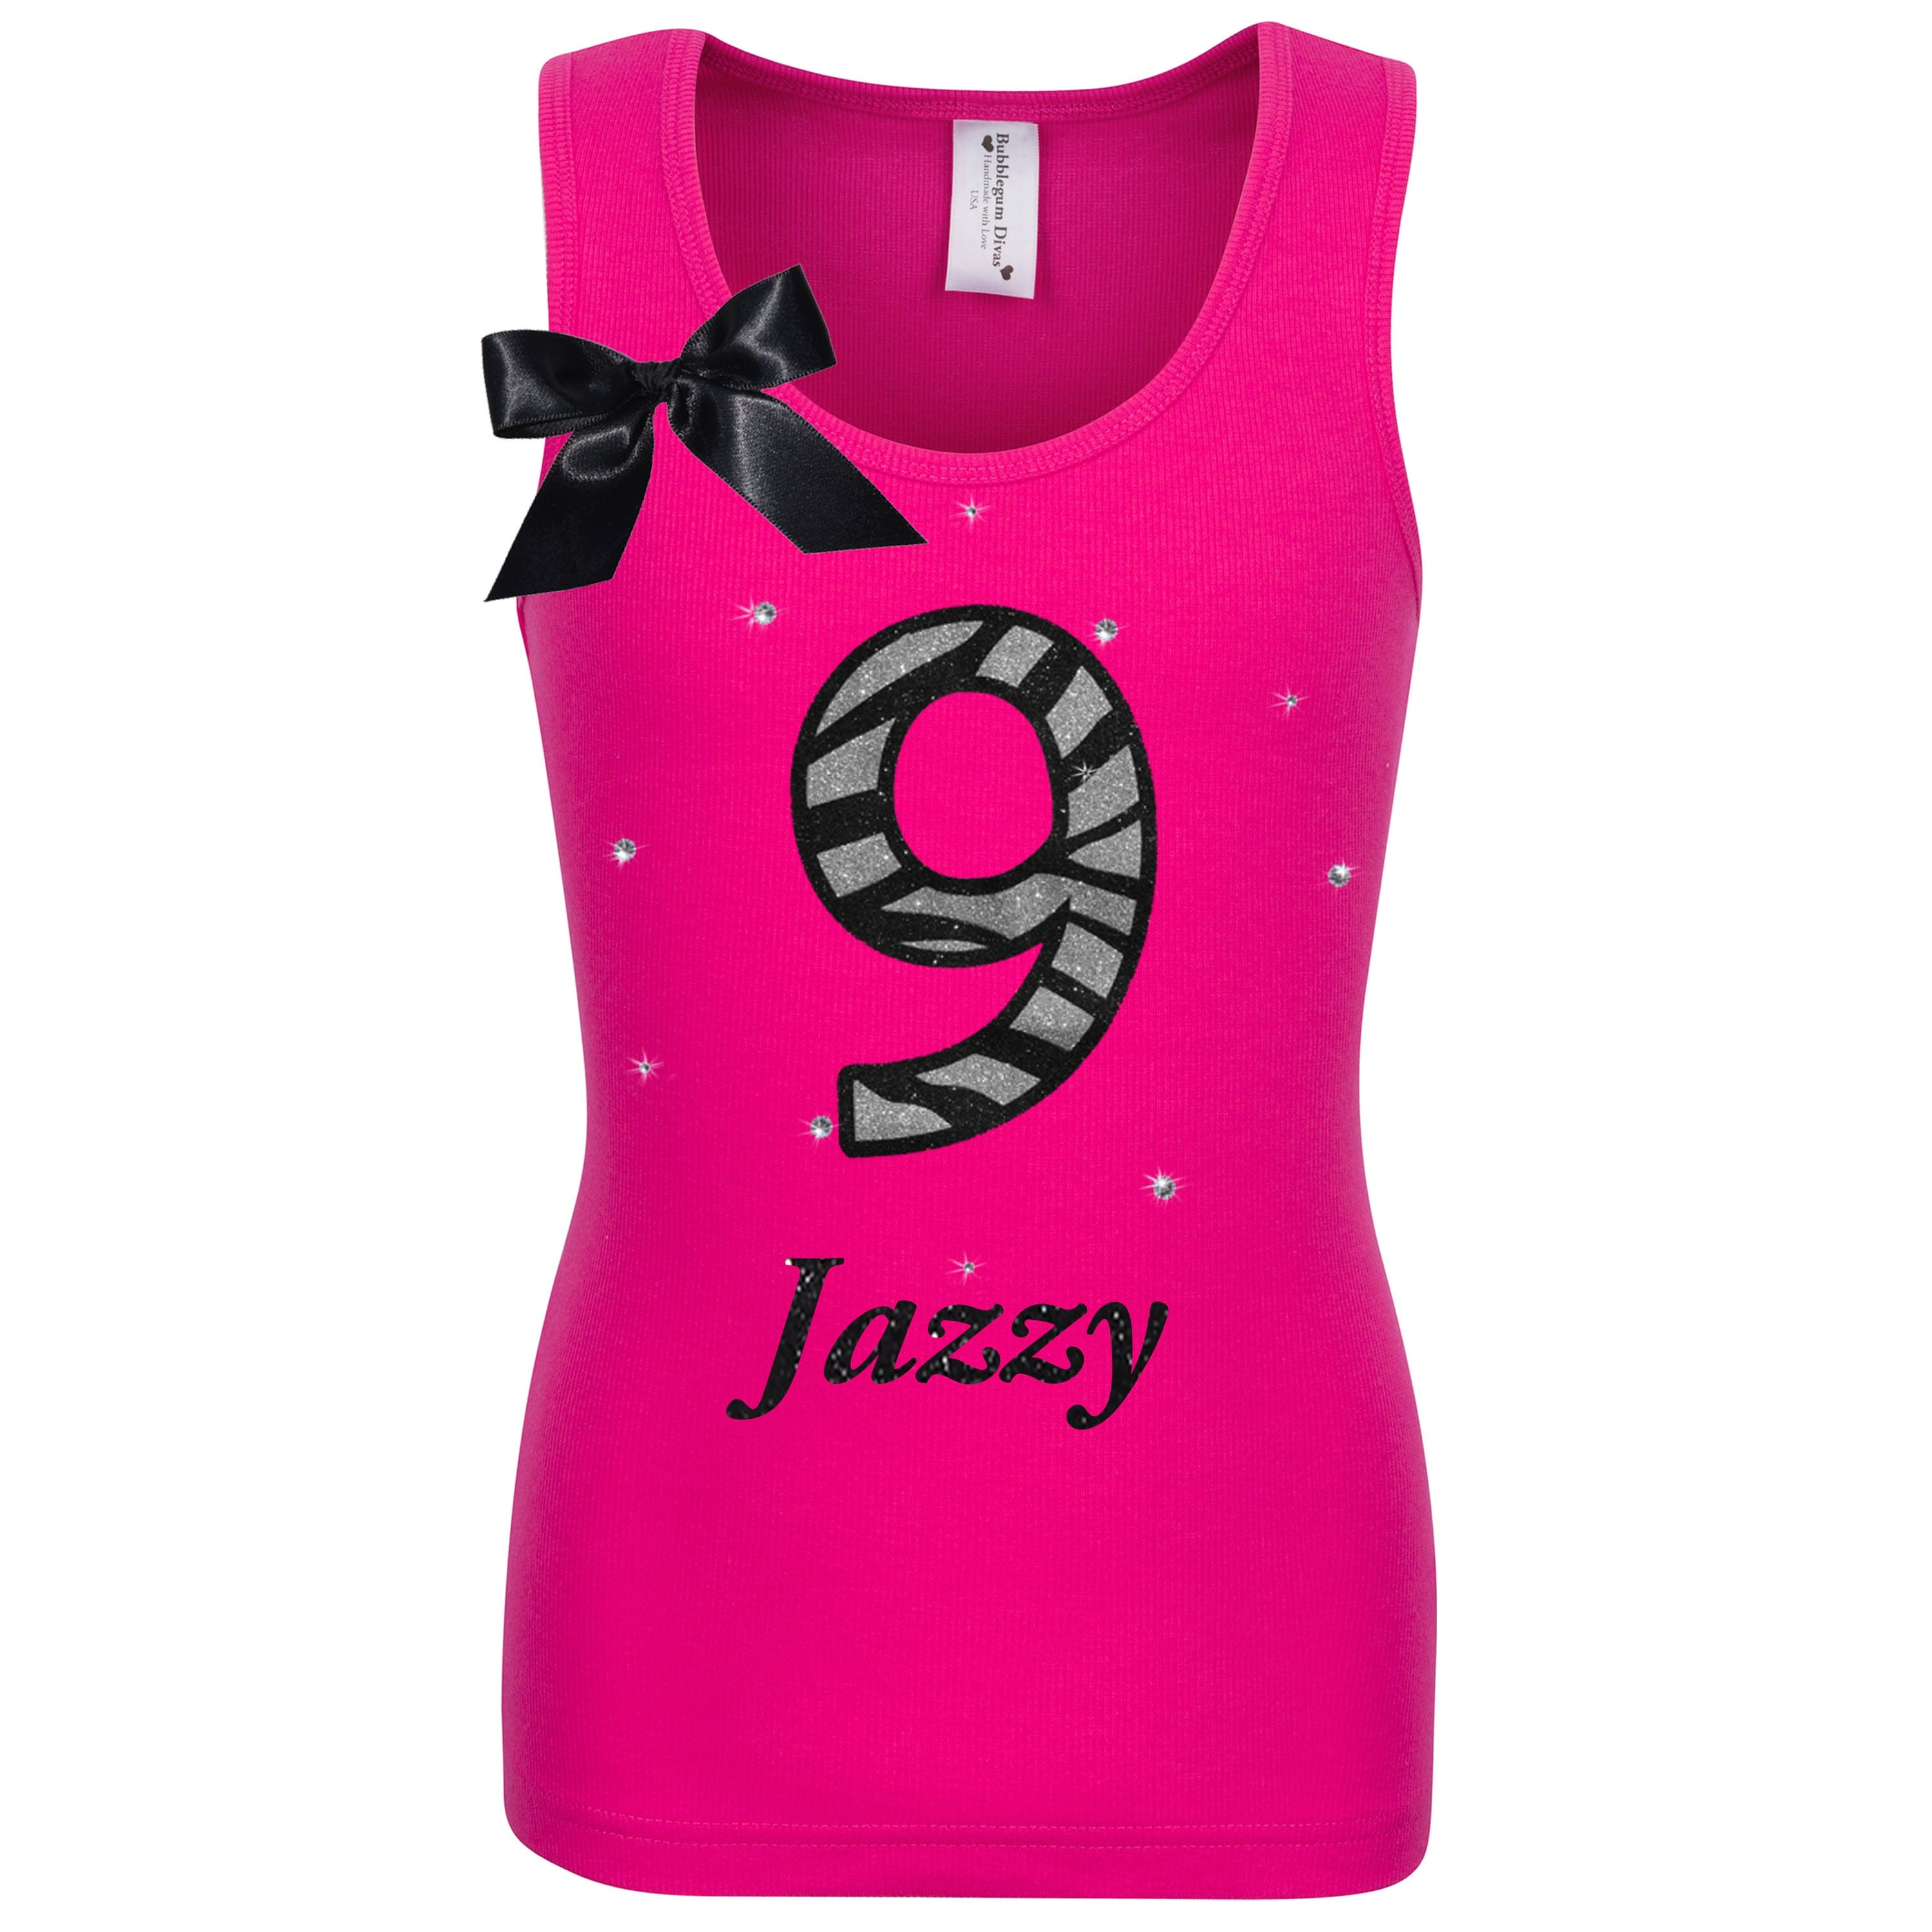 9th Birthday Girl Shirt Zebra Print Personalized Name Age 9